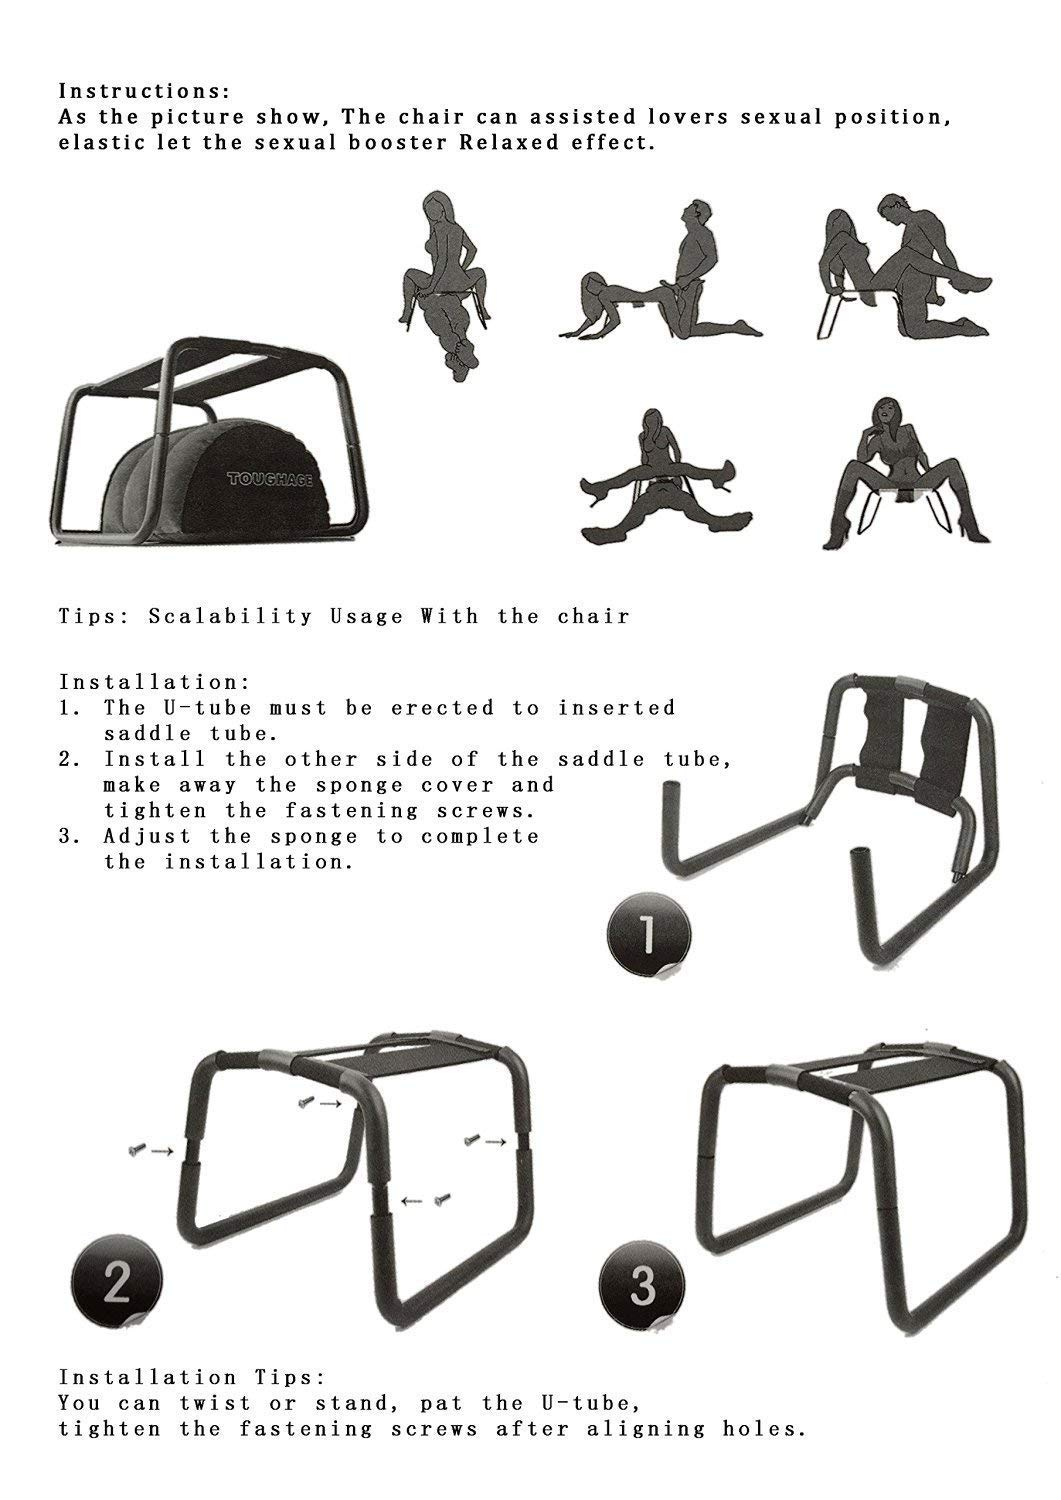 ArcticResident Multifunctional Weightless Position Bouncer Chair,Folding Chair Portable Elastic Chair Bedroom,Bathroom Chair Furniture